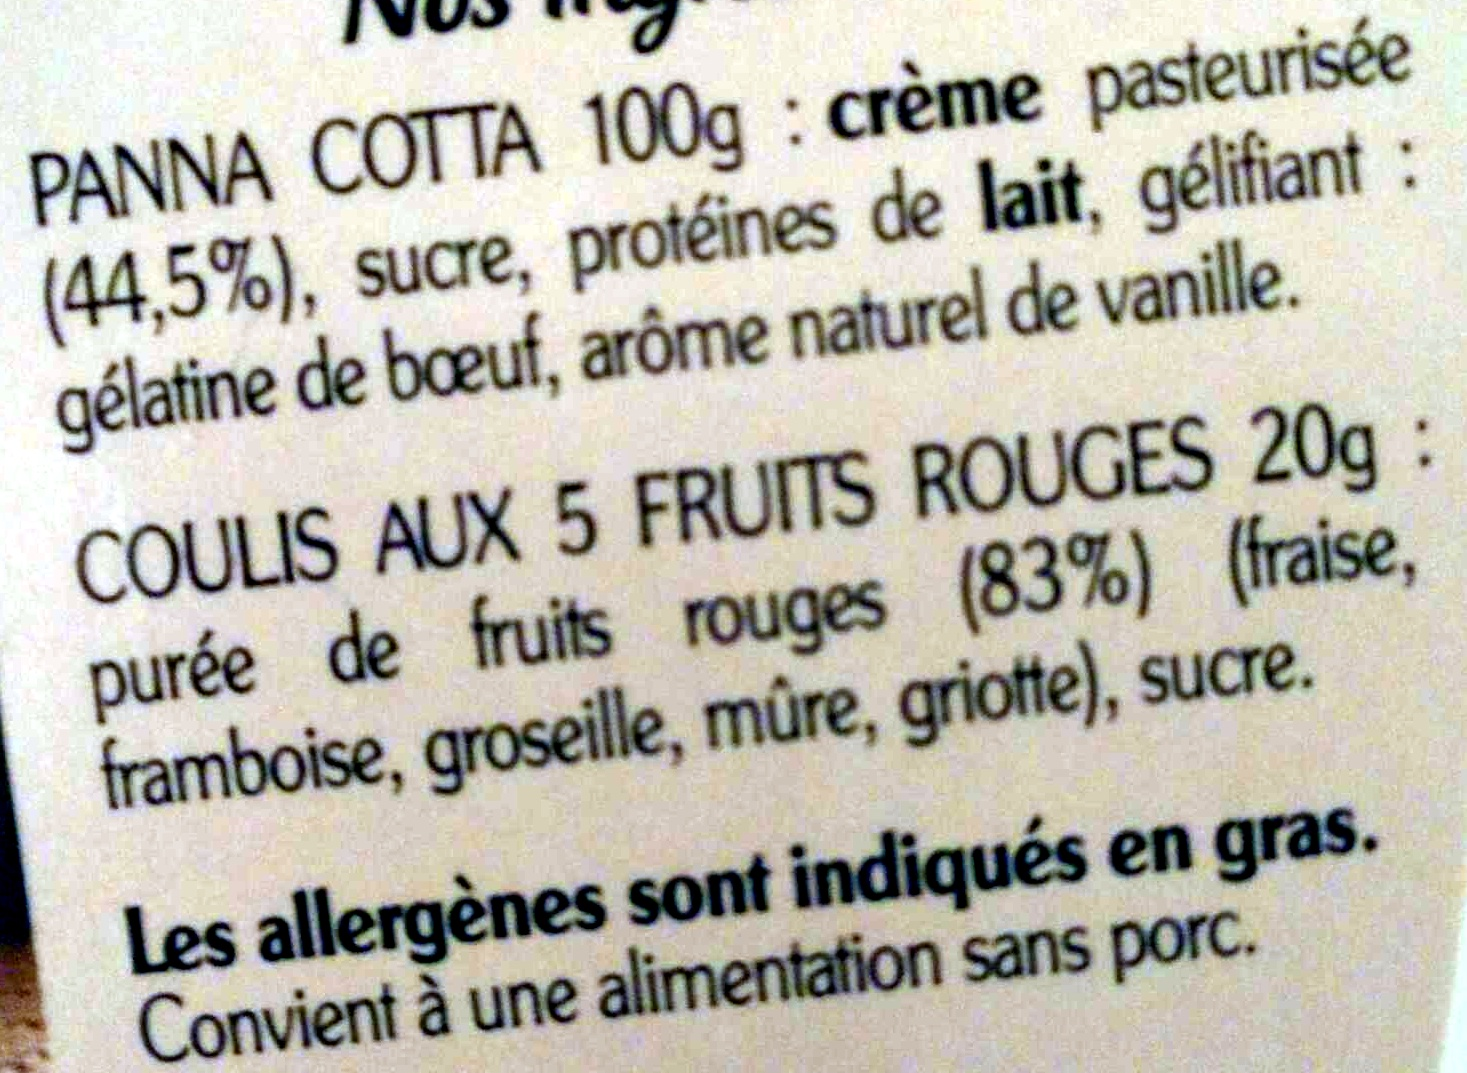 La Panna Cotta et son coulis 5 fruits rouges - Ingrédients